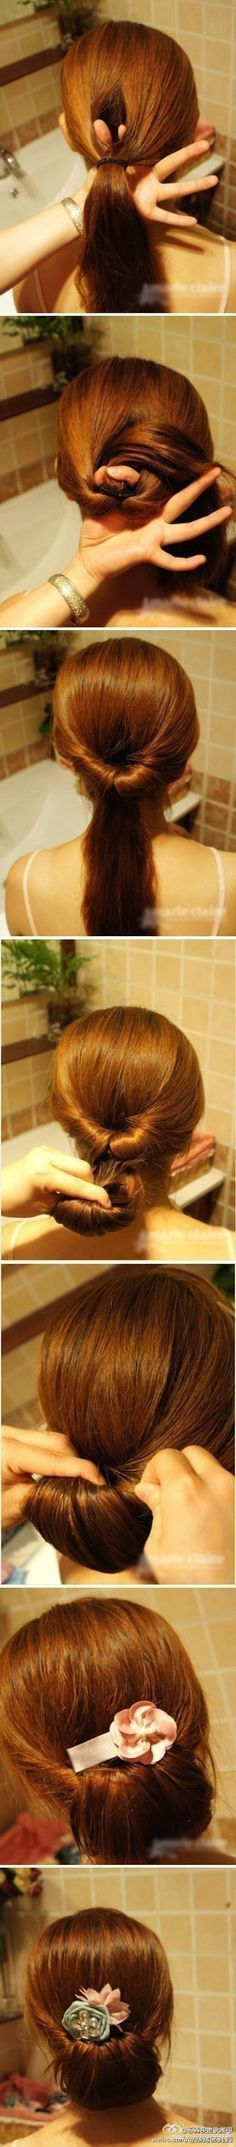 Twisted ponytail!